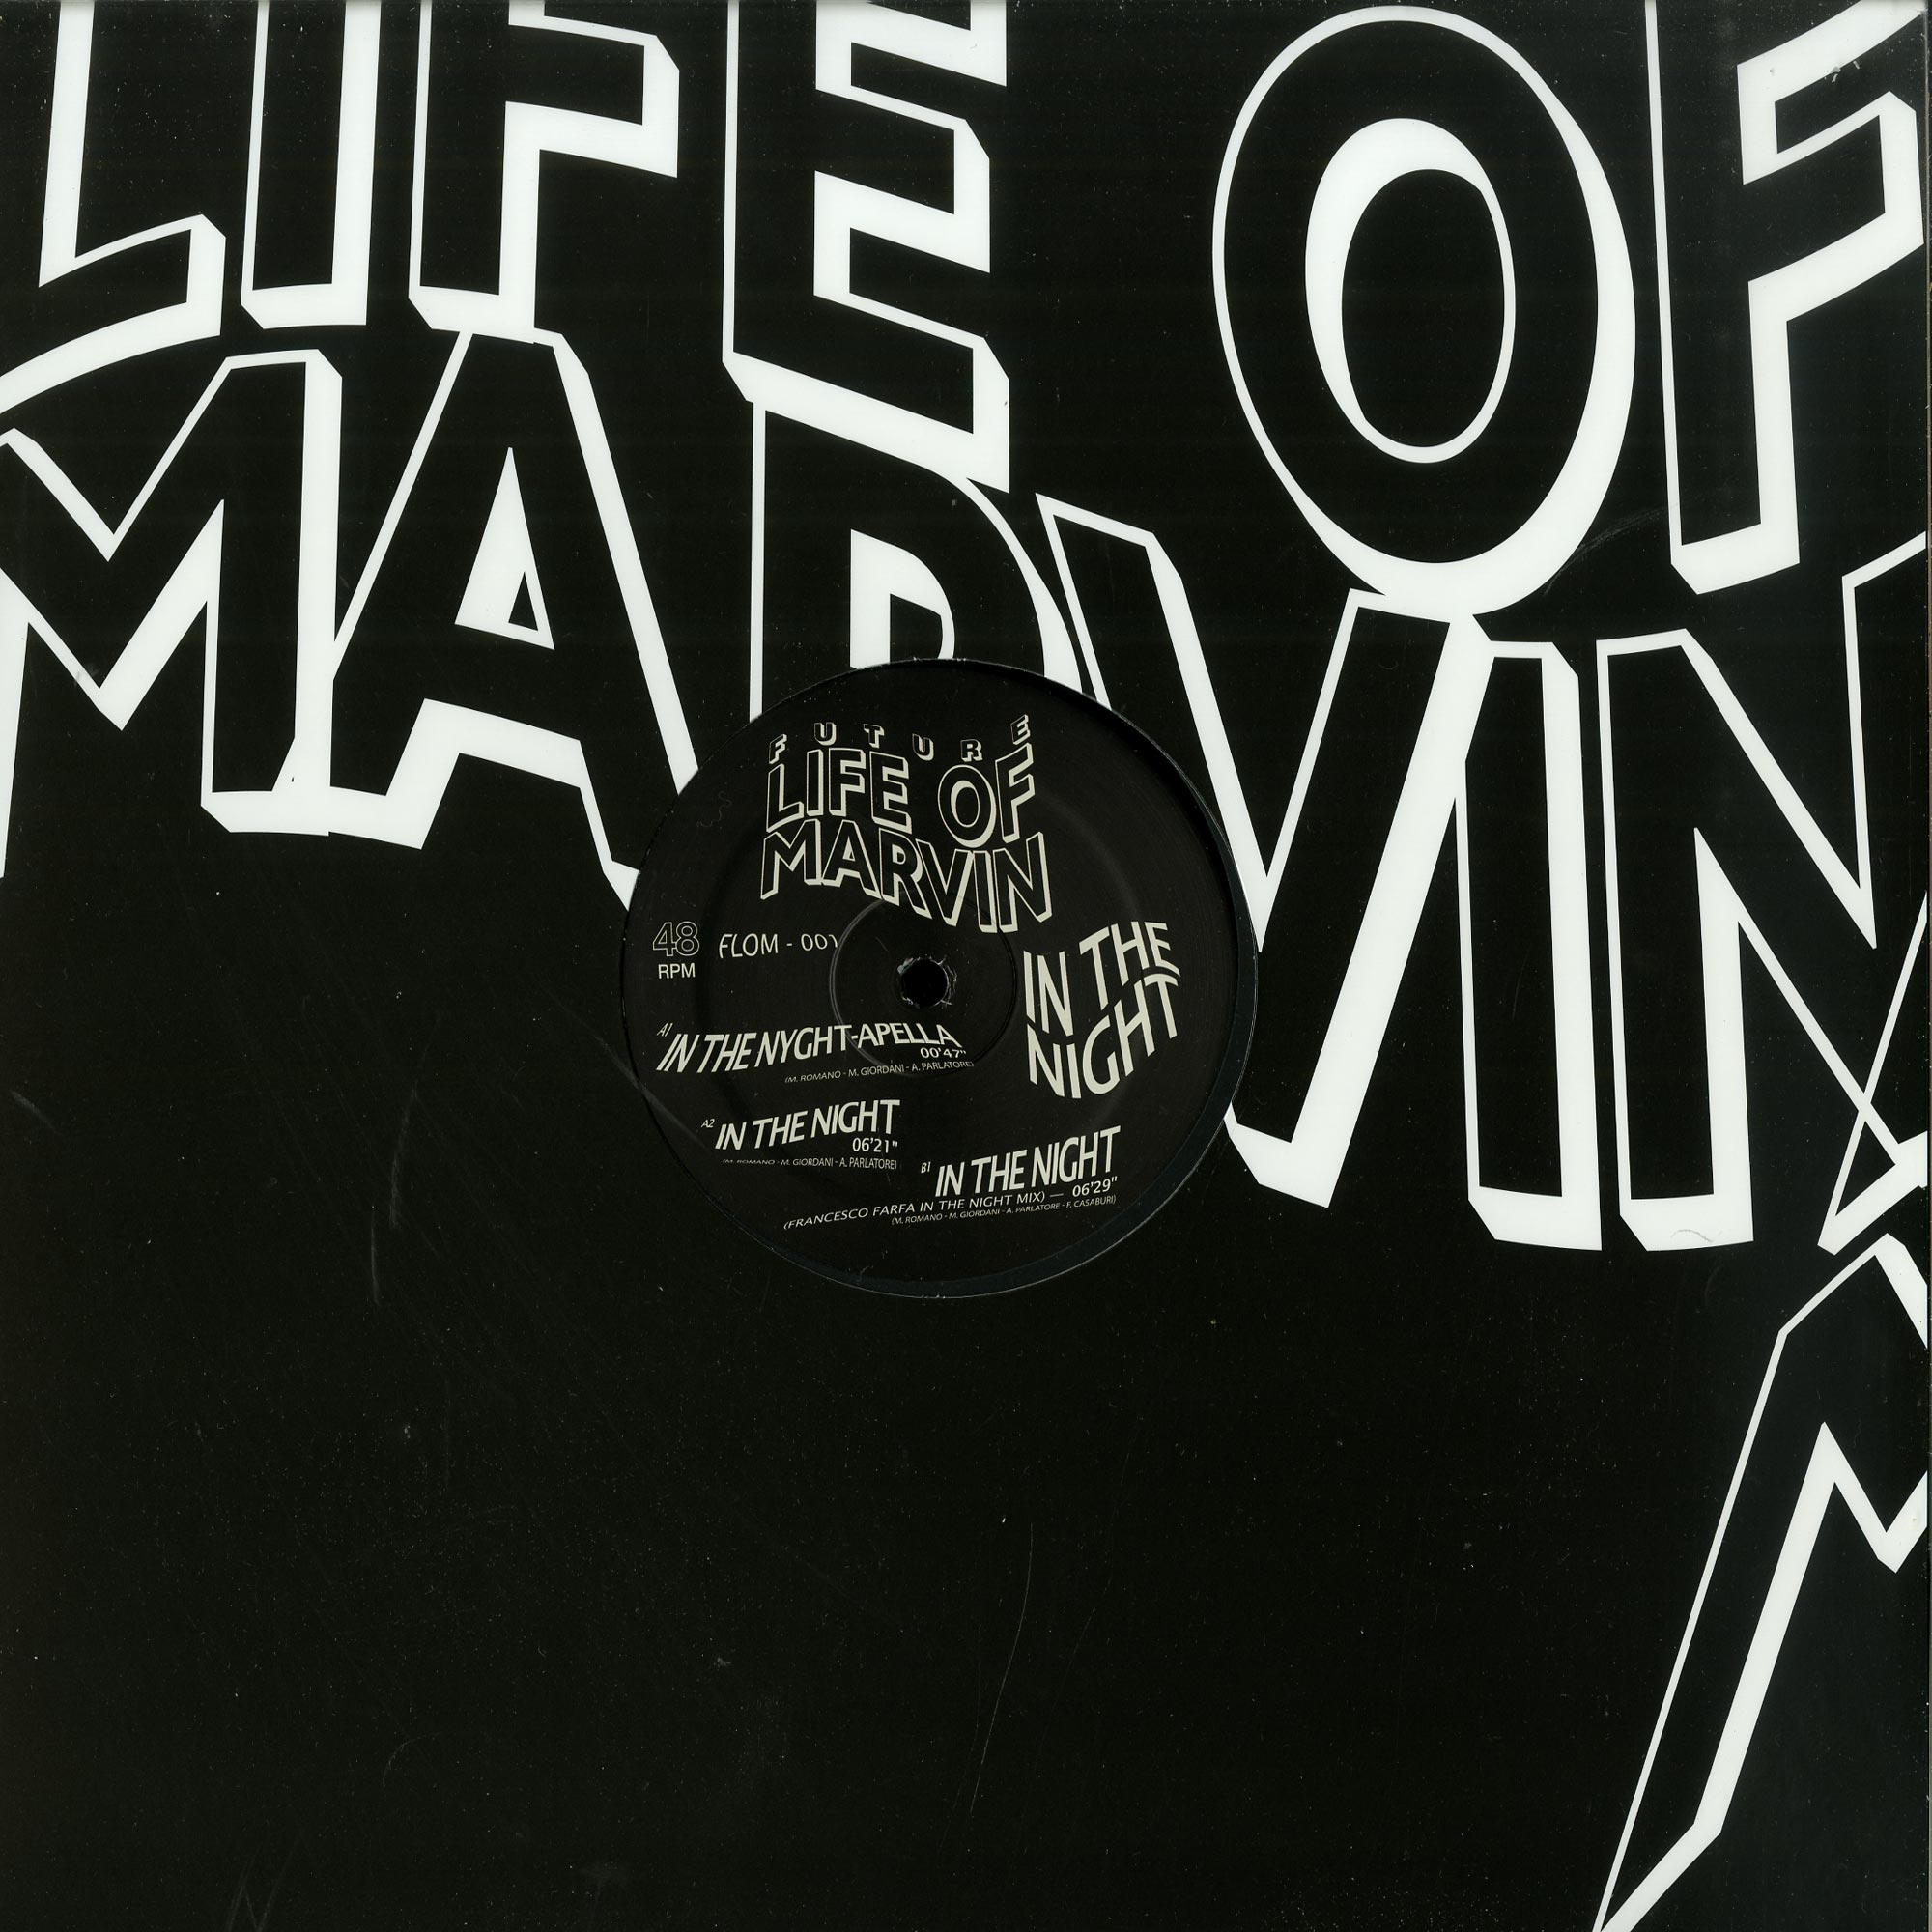 Life Of Marvin - IN THE NIGHT